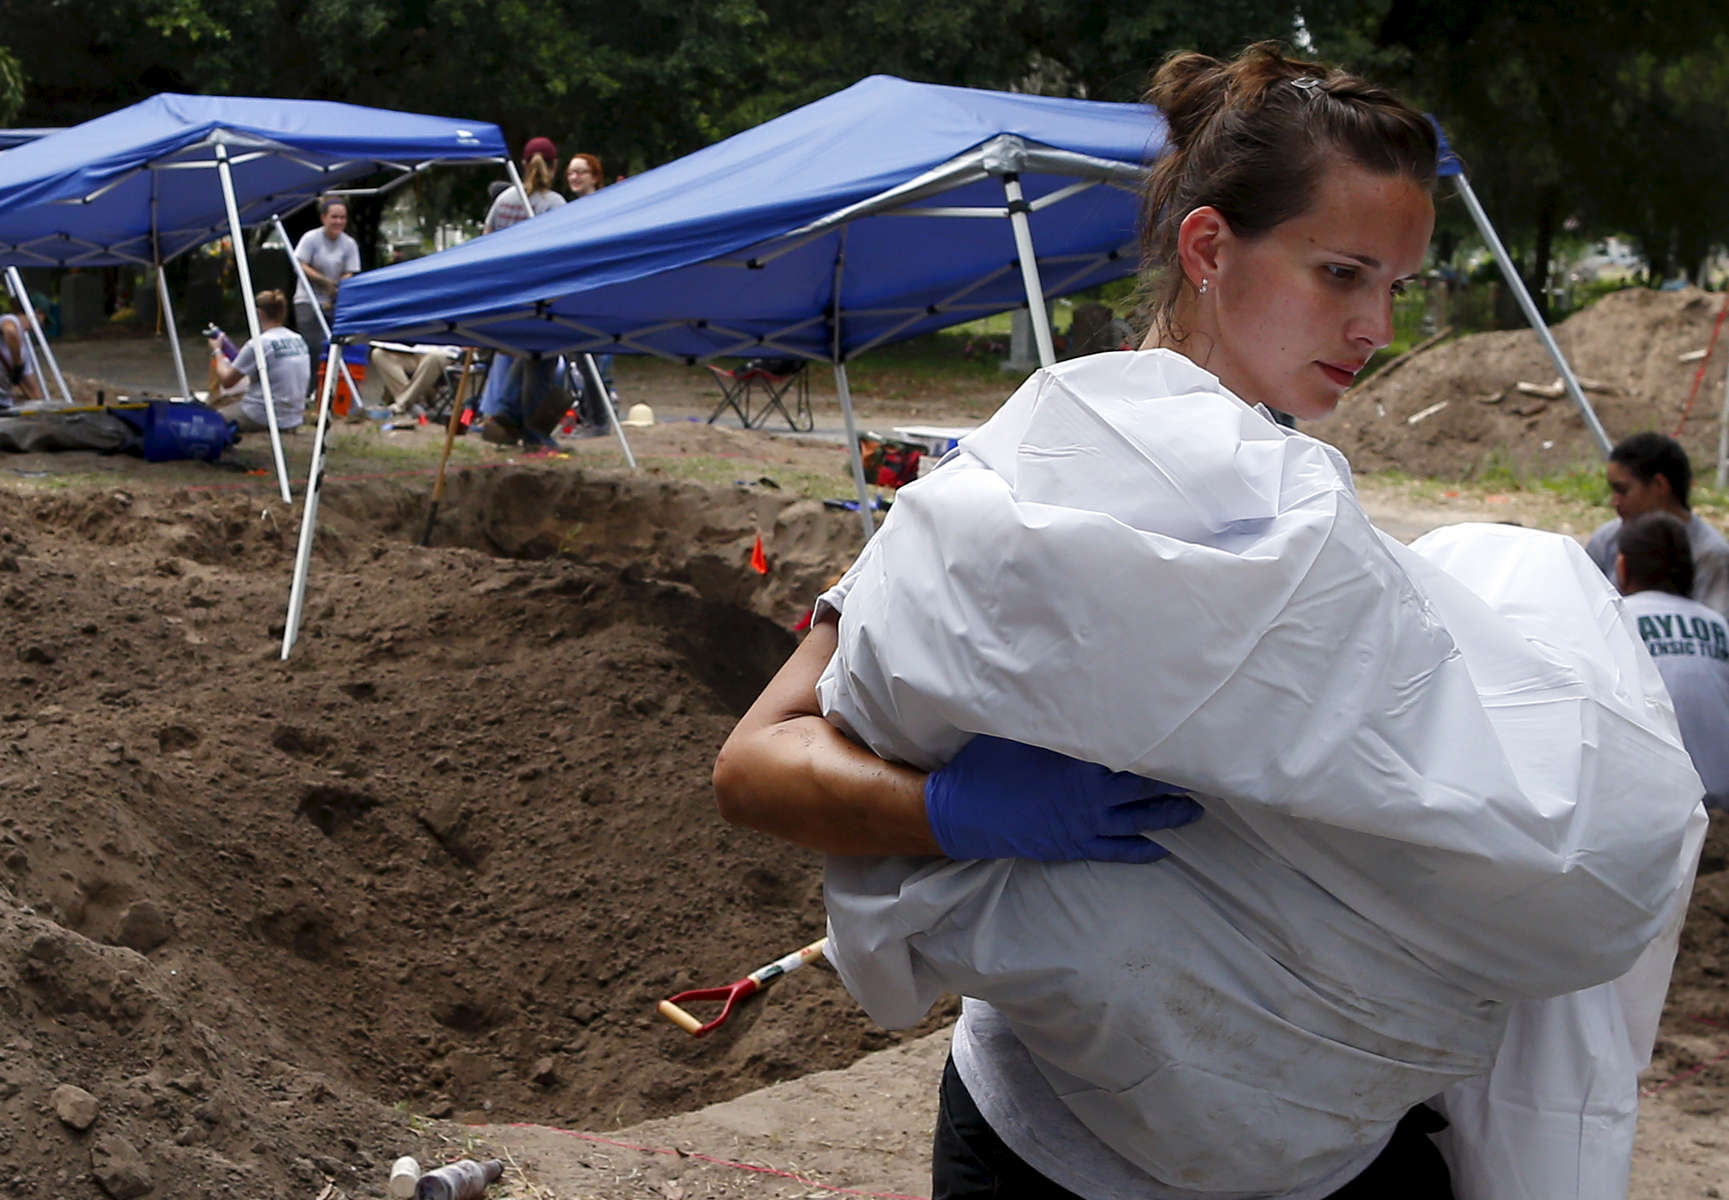 In Sacred Heart Cemetery, students found corpses stuffed into body bags, rolled in blankets, and placed in garbage bags. Ashley Roy, 30, who works as a crime scene tech for the Waco Police Department in Waco, Texas carried a body of an unidentified migrant after helping members of the Baylor forensics team to exhume it in Falfurrias, Texas June 10, 2014.